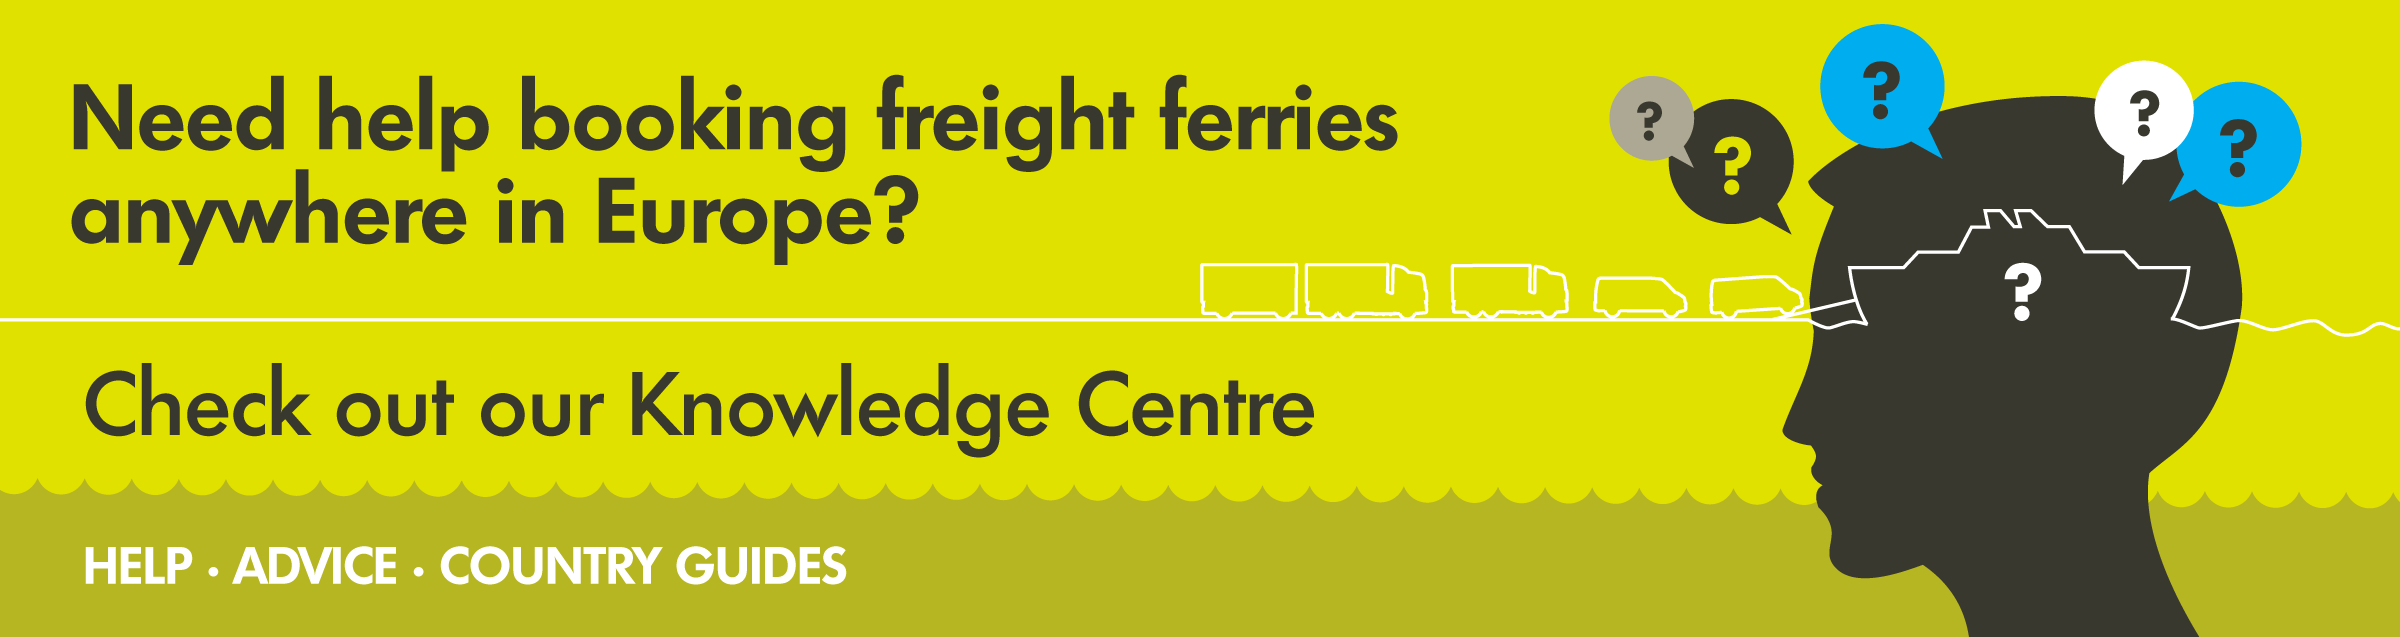 Need help booking freight ferries anywhere in Europe? Check out our knowledge centre